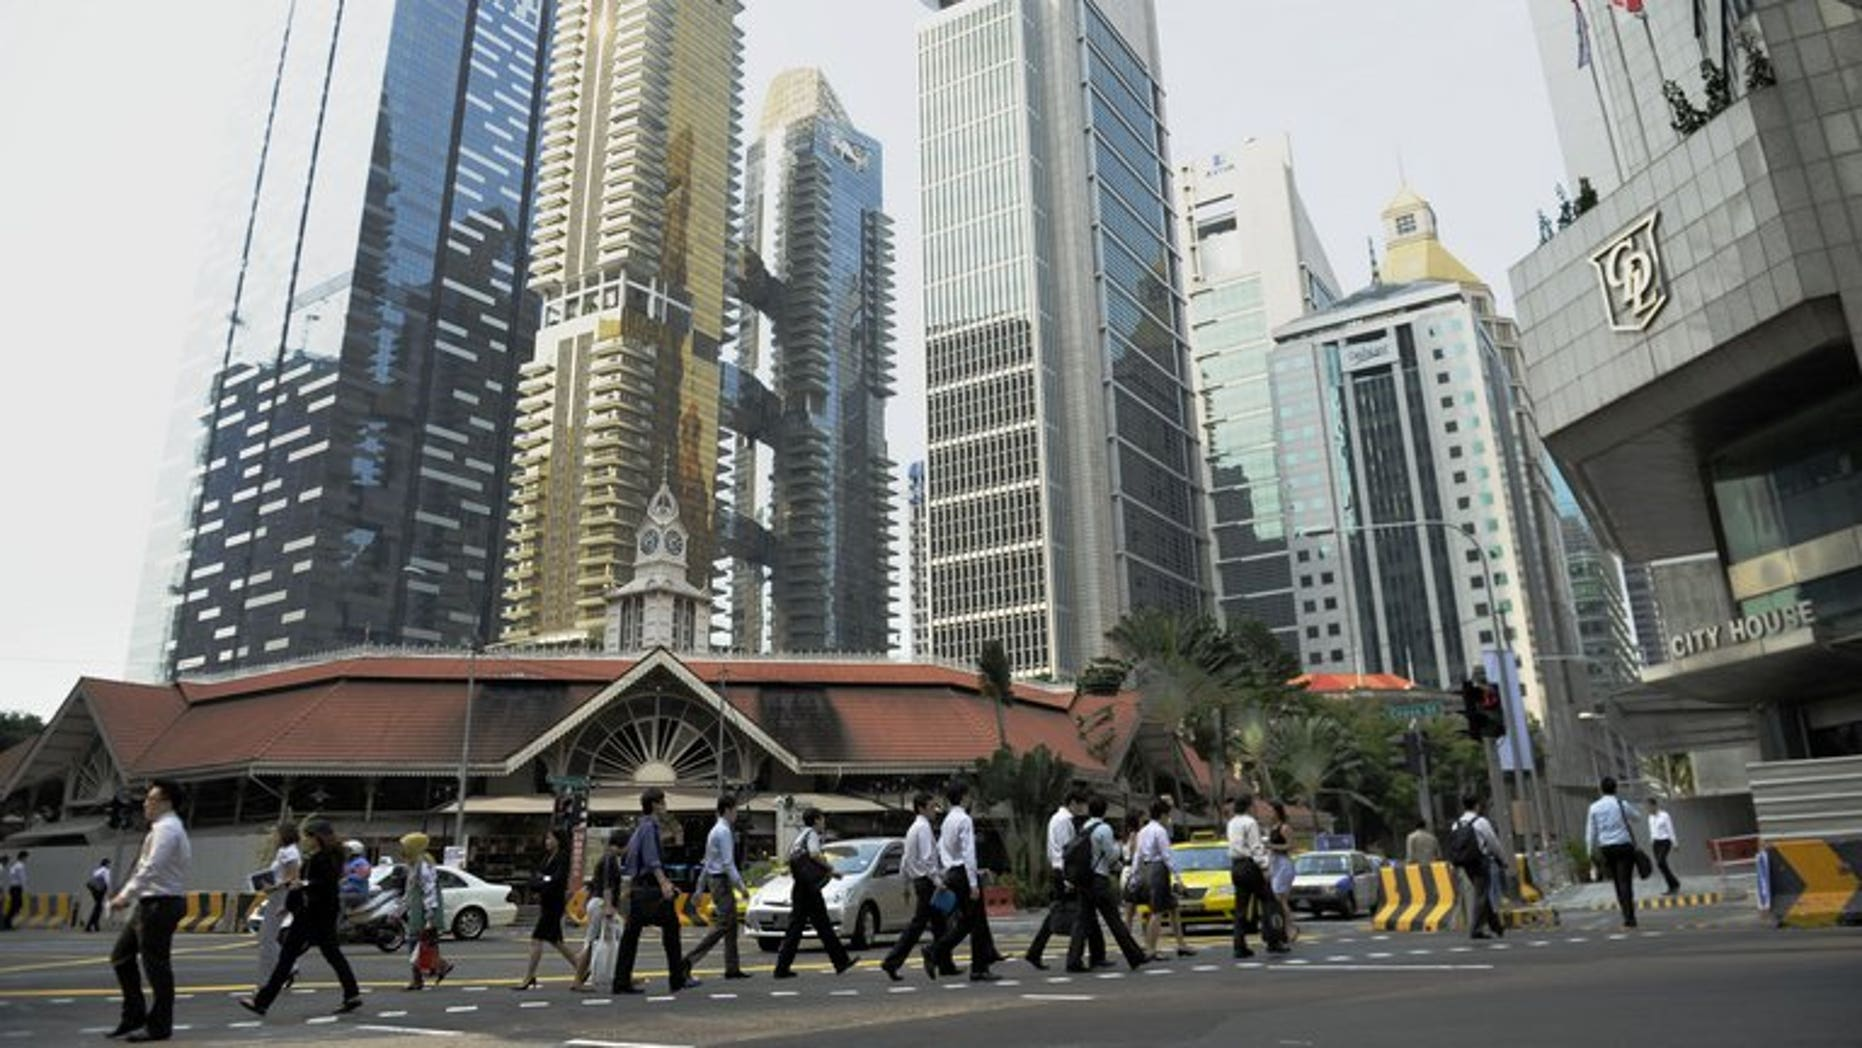 Workers head to work at Singapore's central business district on August 23, 2011. Singapore announced tighter rules on the hiring of foreign professional workers, saying companies will from next year have to show proof they first tried to recruit local citizens